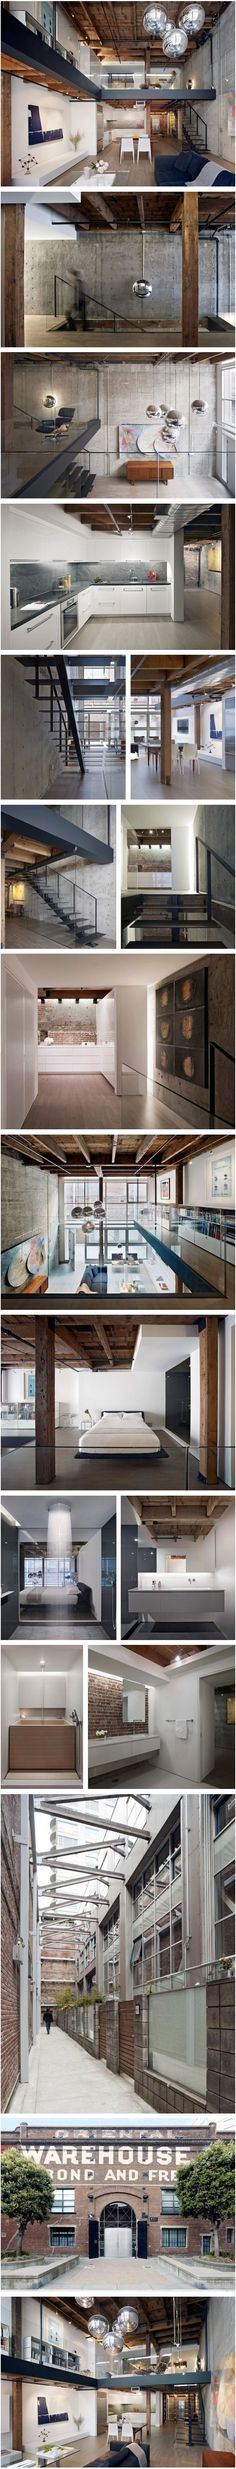 Renovated-Oriental-Warehouse-by-Edmonds-Lee-Architects by chiara stella home